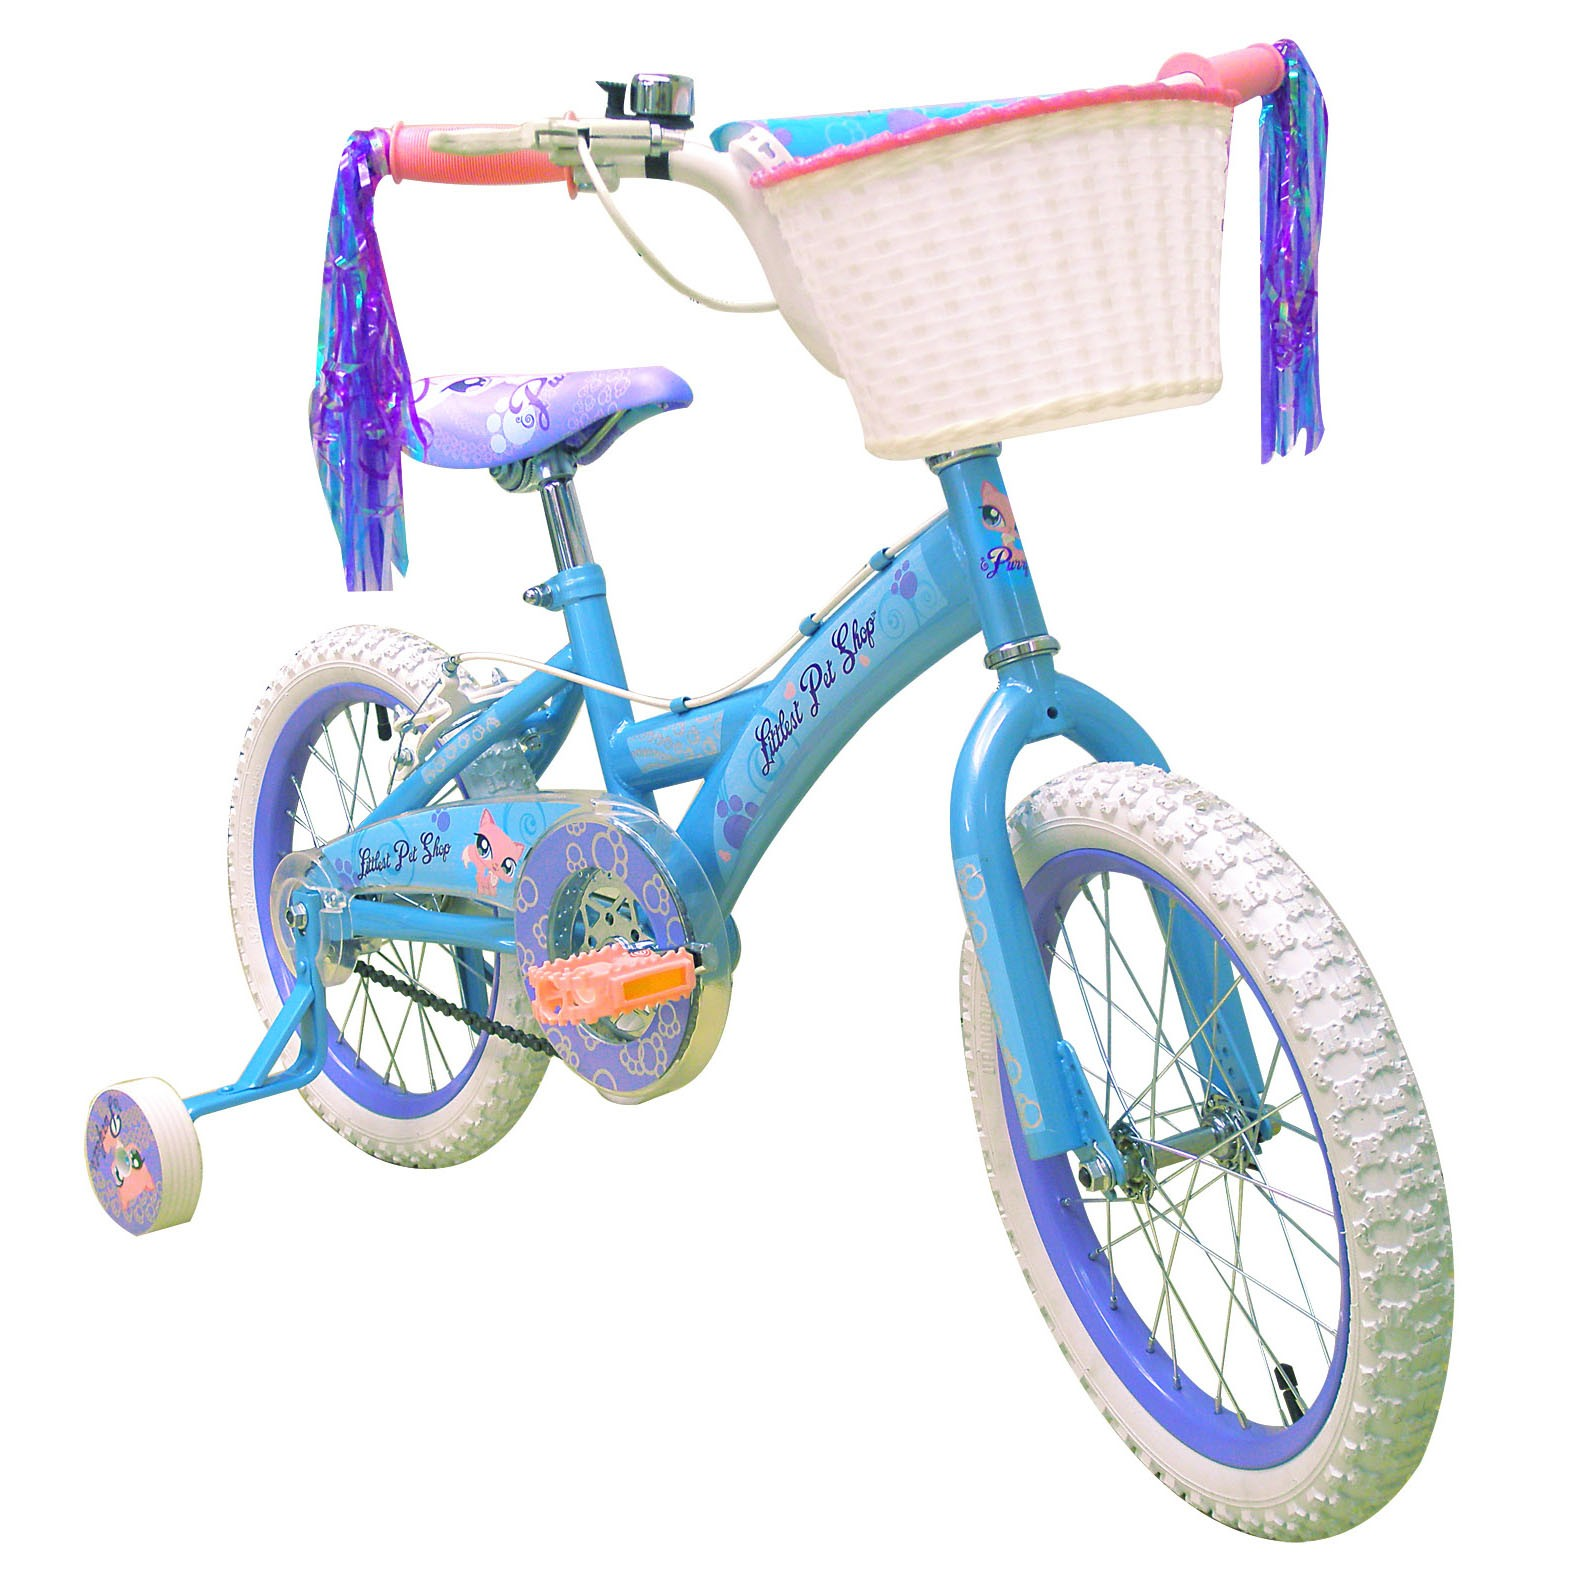 Littlest Pet Shop 16 inch Cycle Force Bike